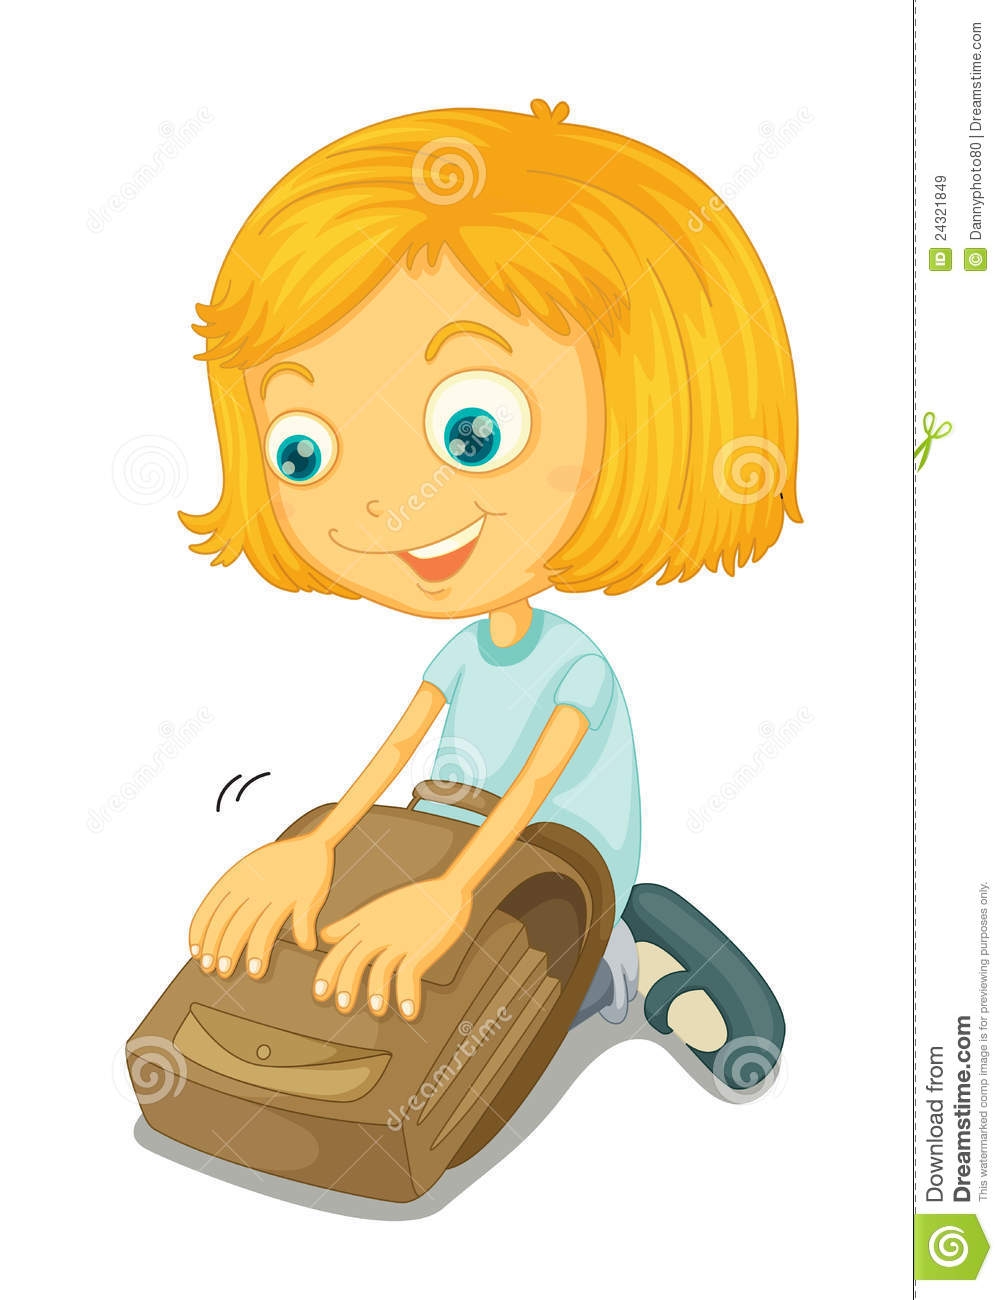 Pack school bag clipart 7 » Clipart Station.